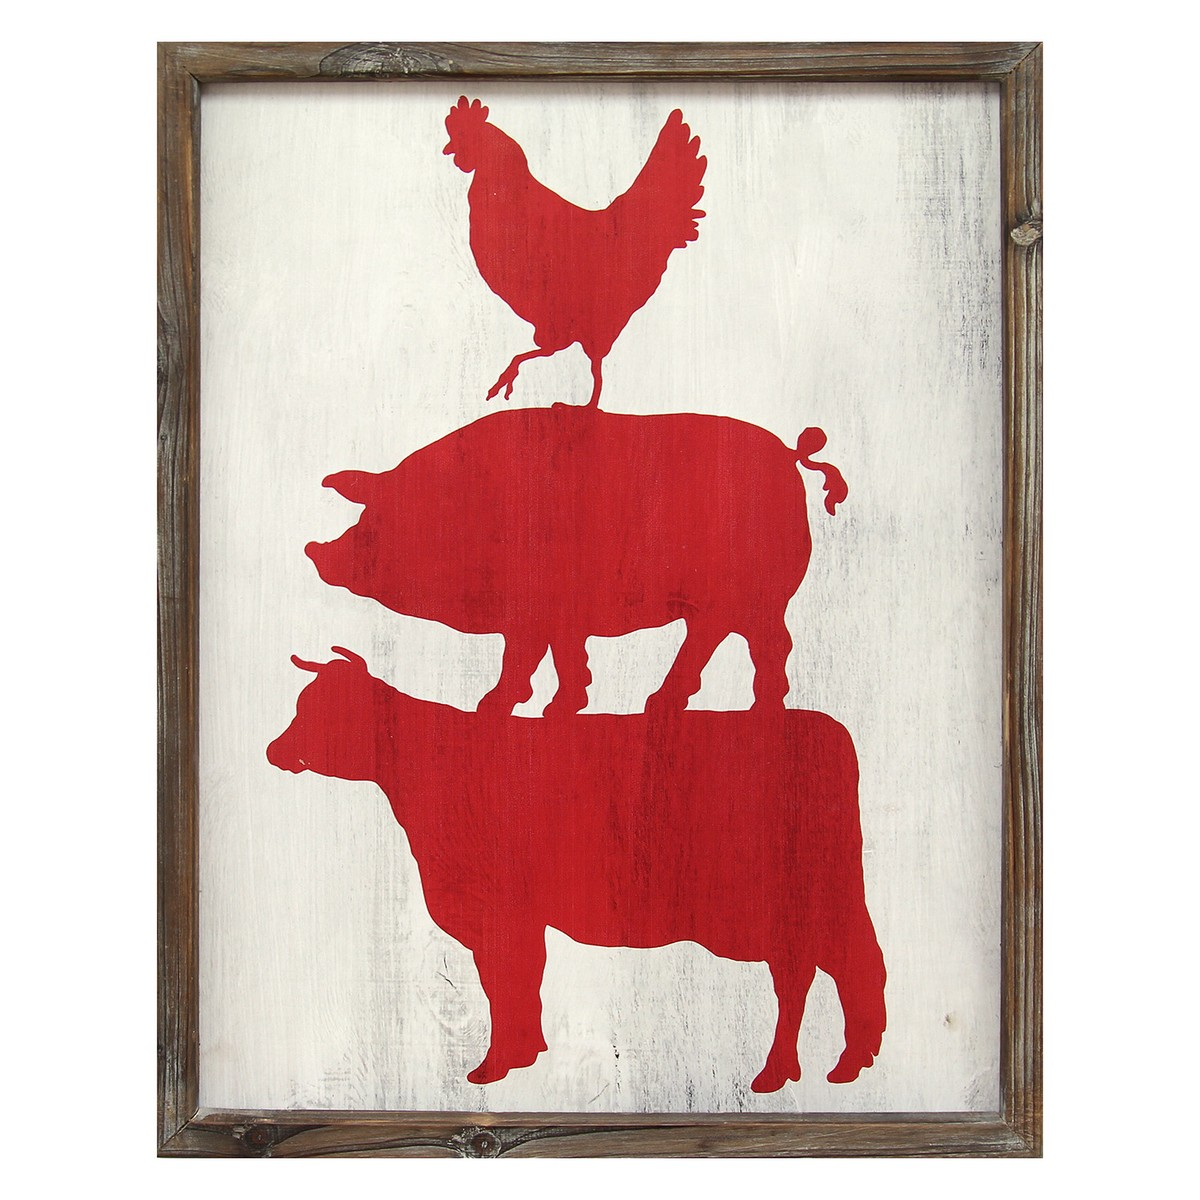 Stratton home decor cow pig rooster wall art multi for Stratton house